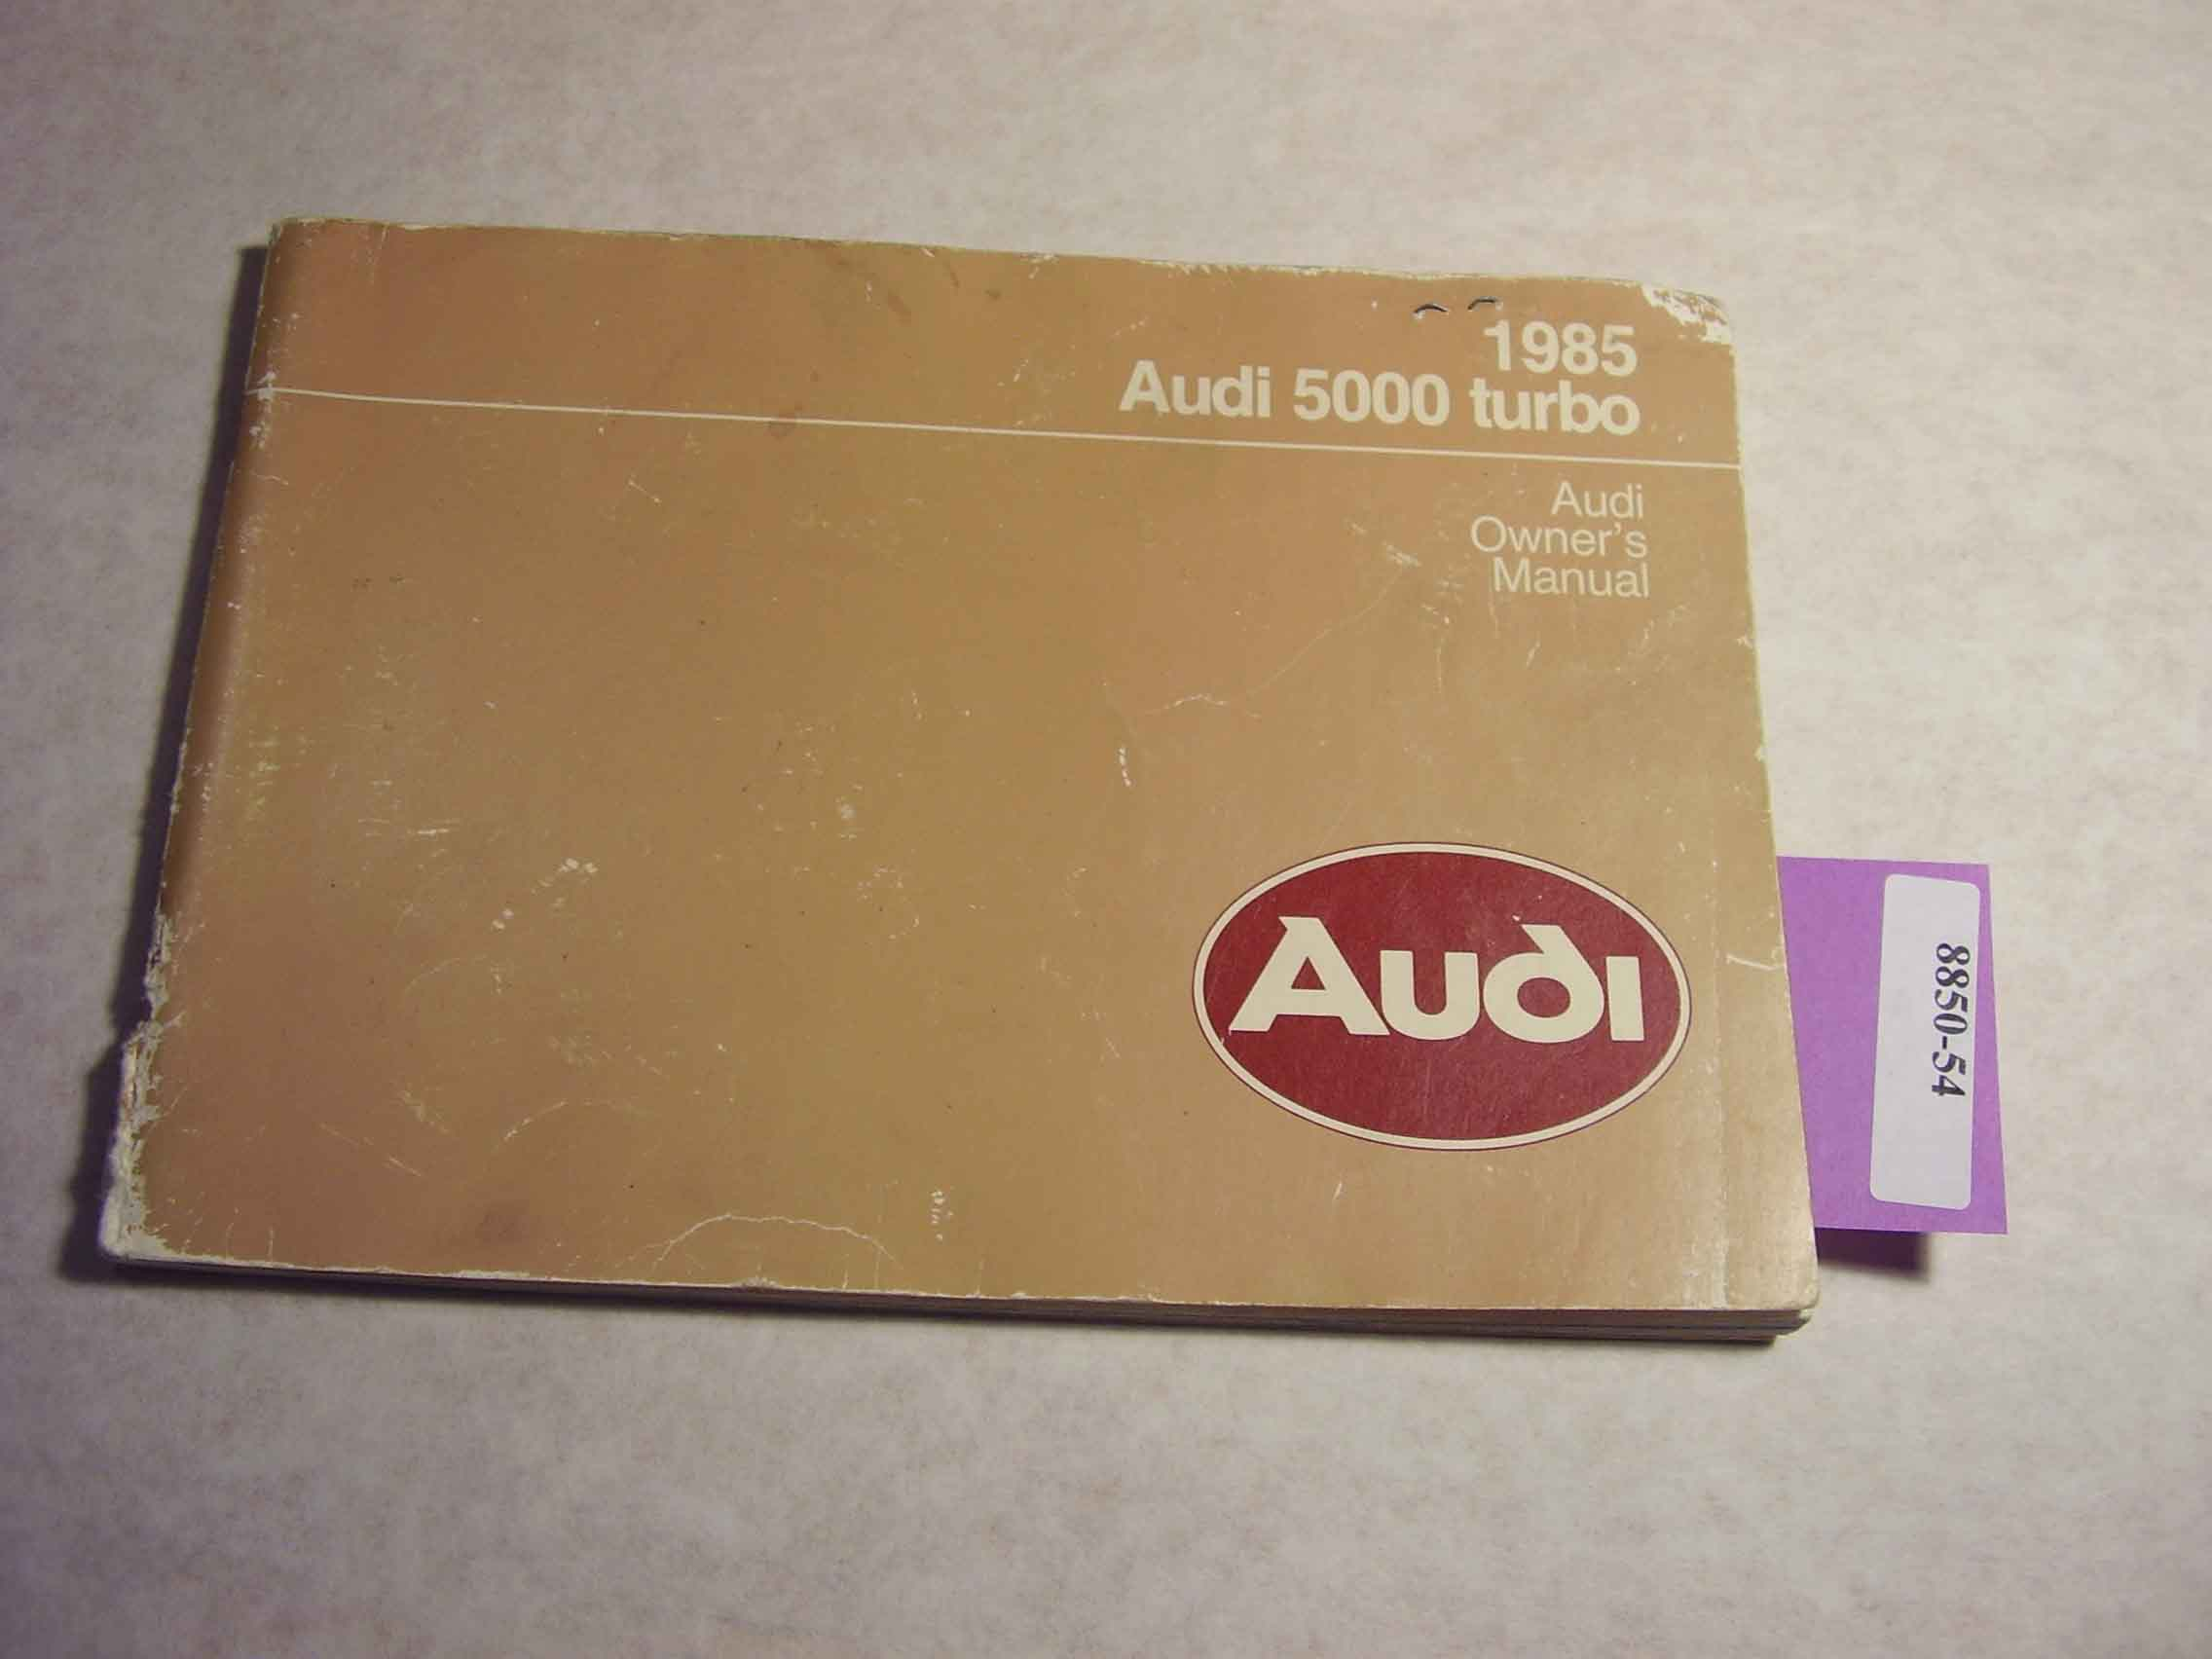 1985 Audi 5000 Turbo Owners Manual